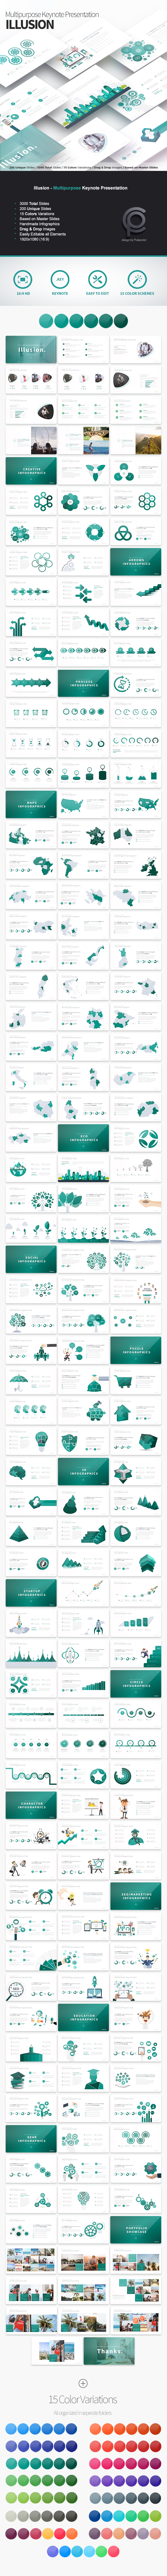 Illusion - Multipurpose Keynote Presentation - Business Keynote Templates